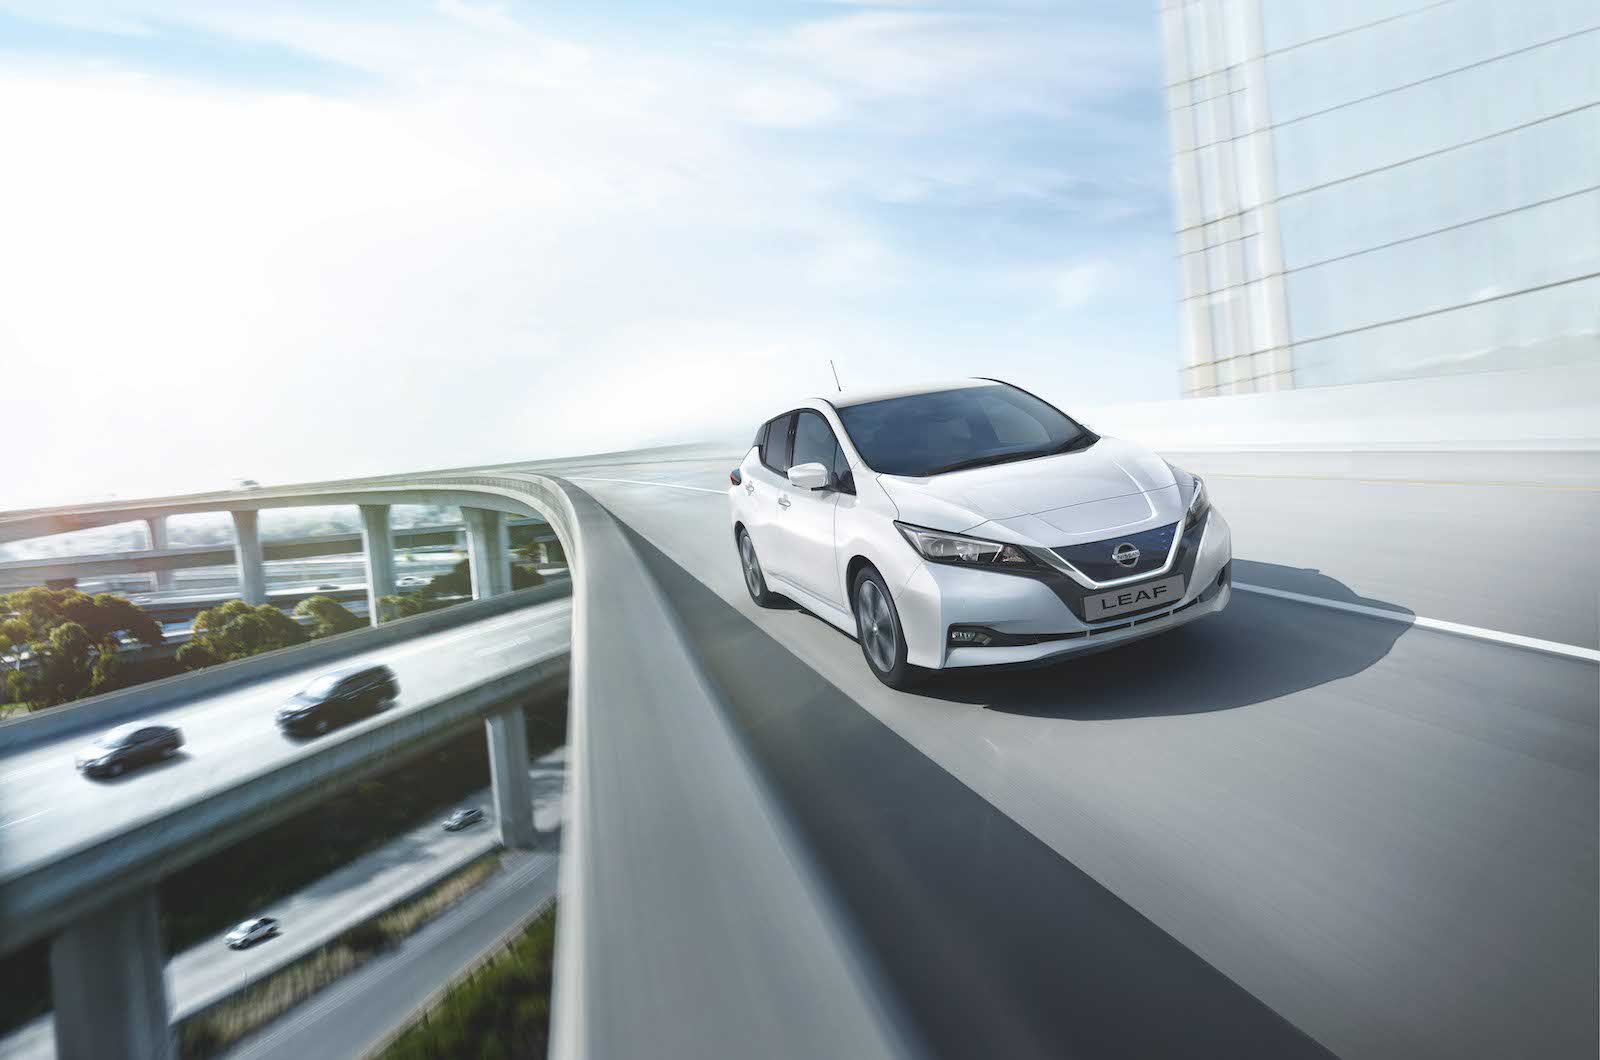 NissanConnect is the smart way to navigate city meetings in a company car